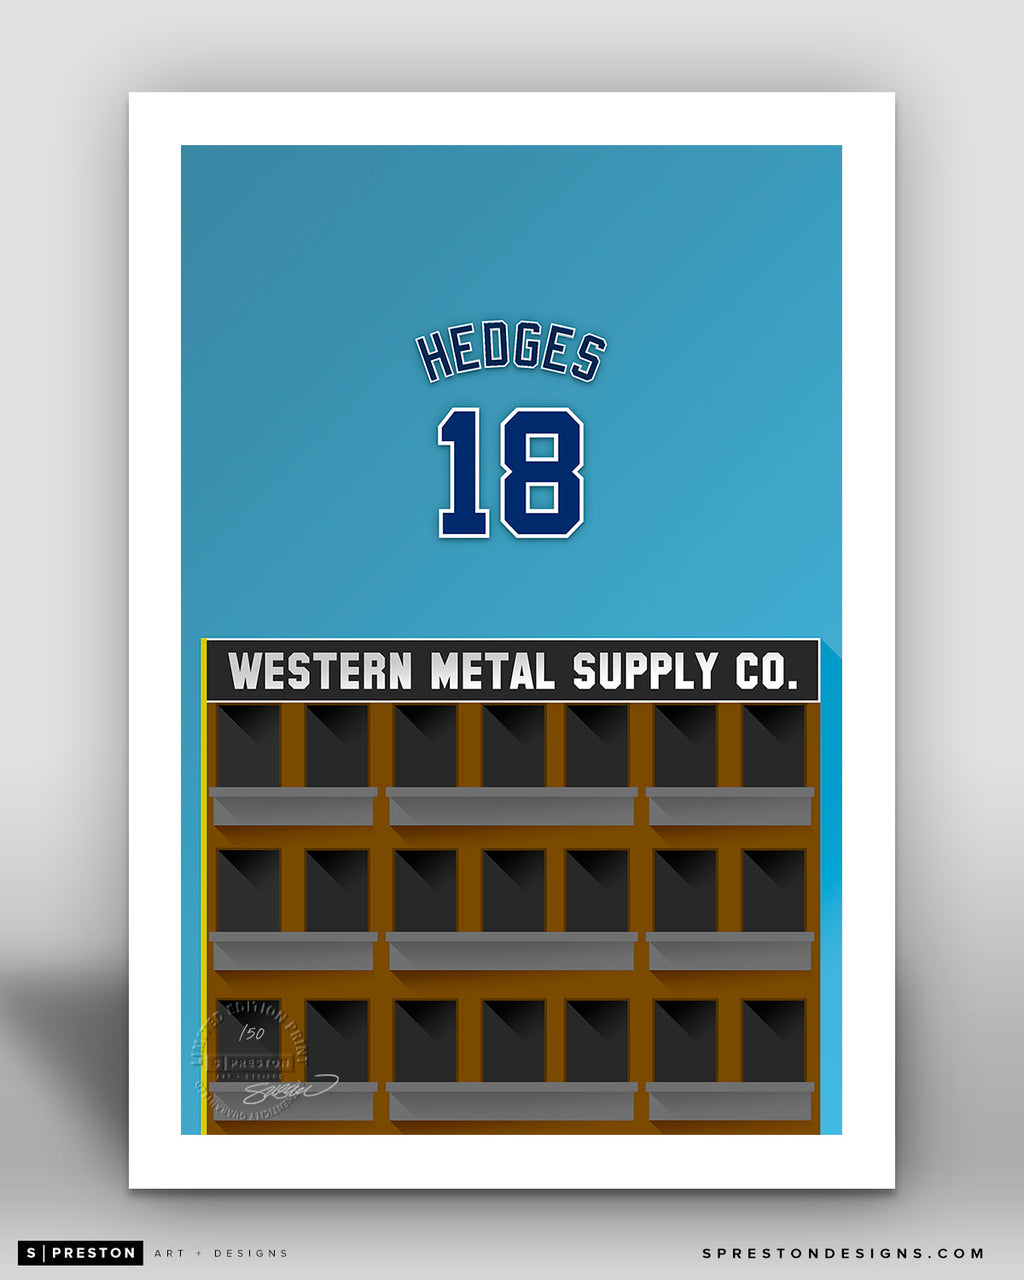 Minimalist Petco Park - Player Series - Austin Hedges